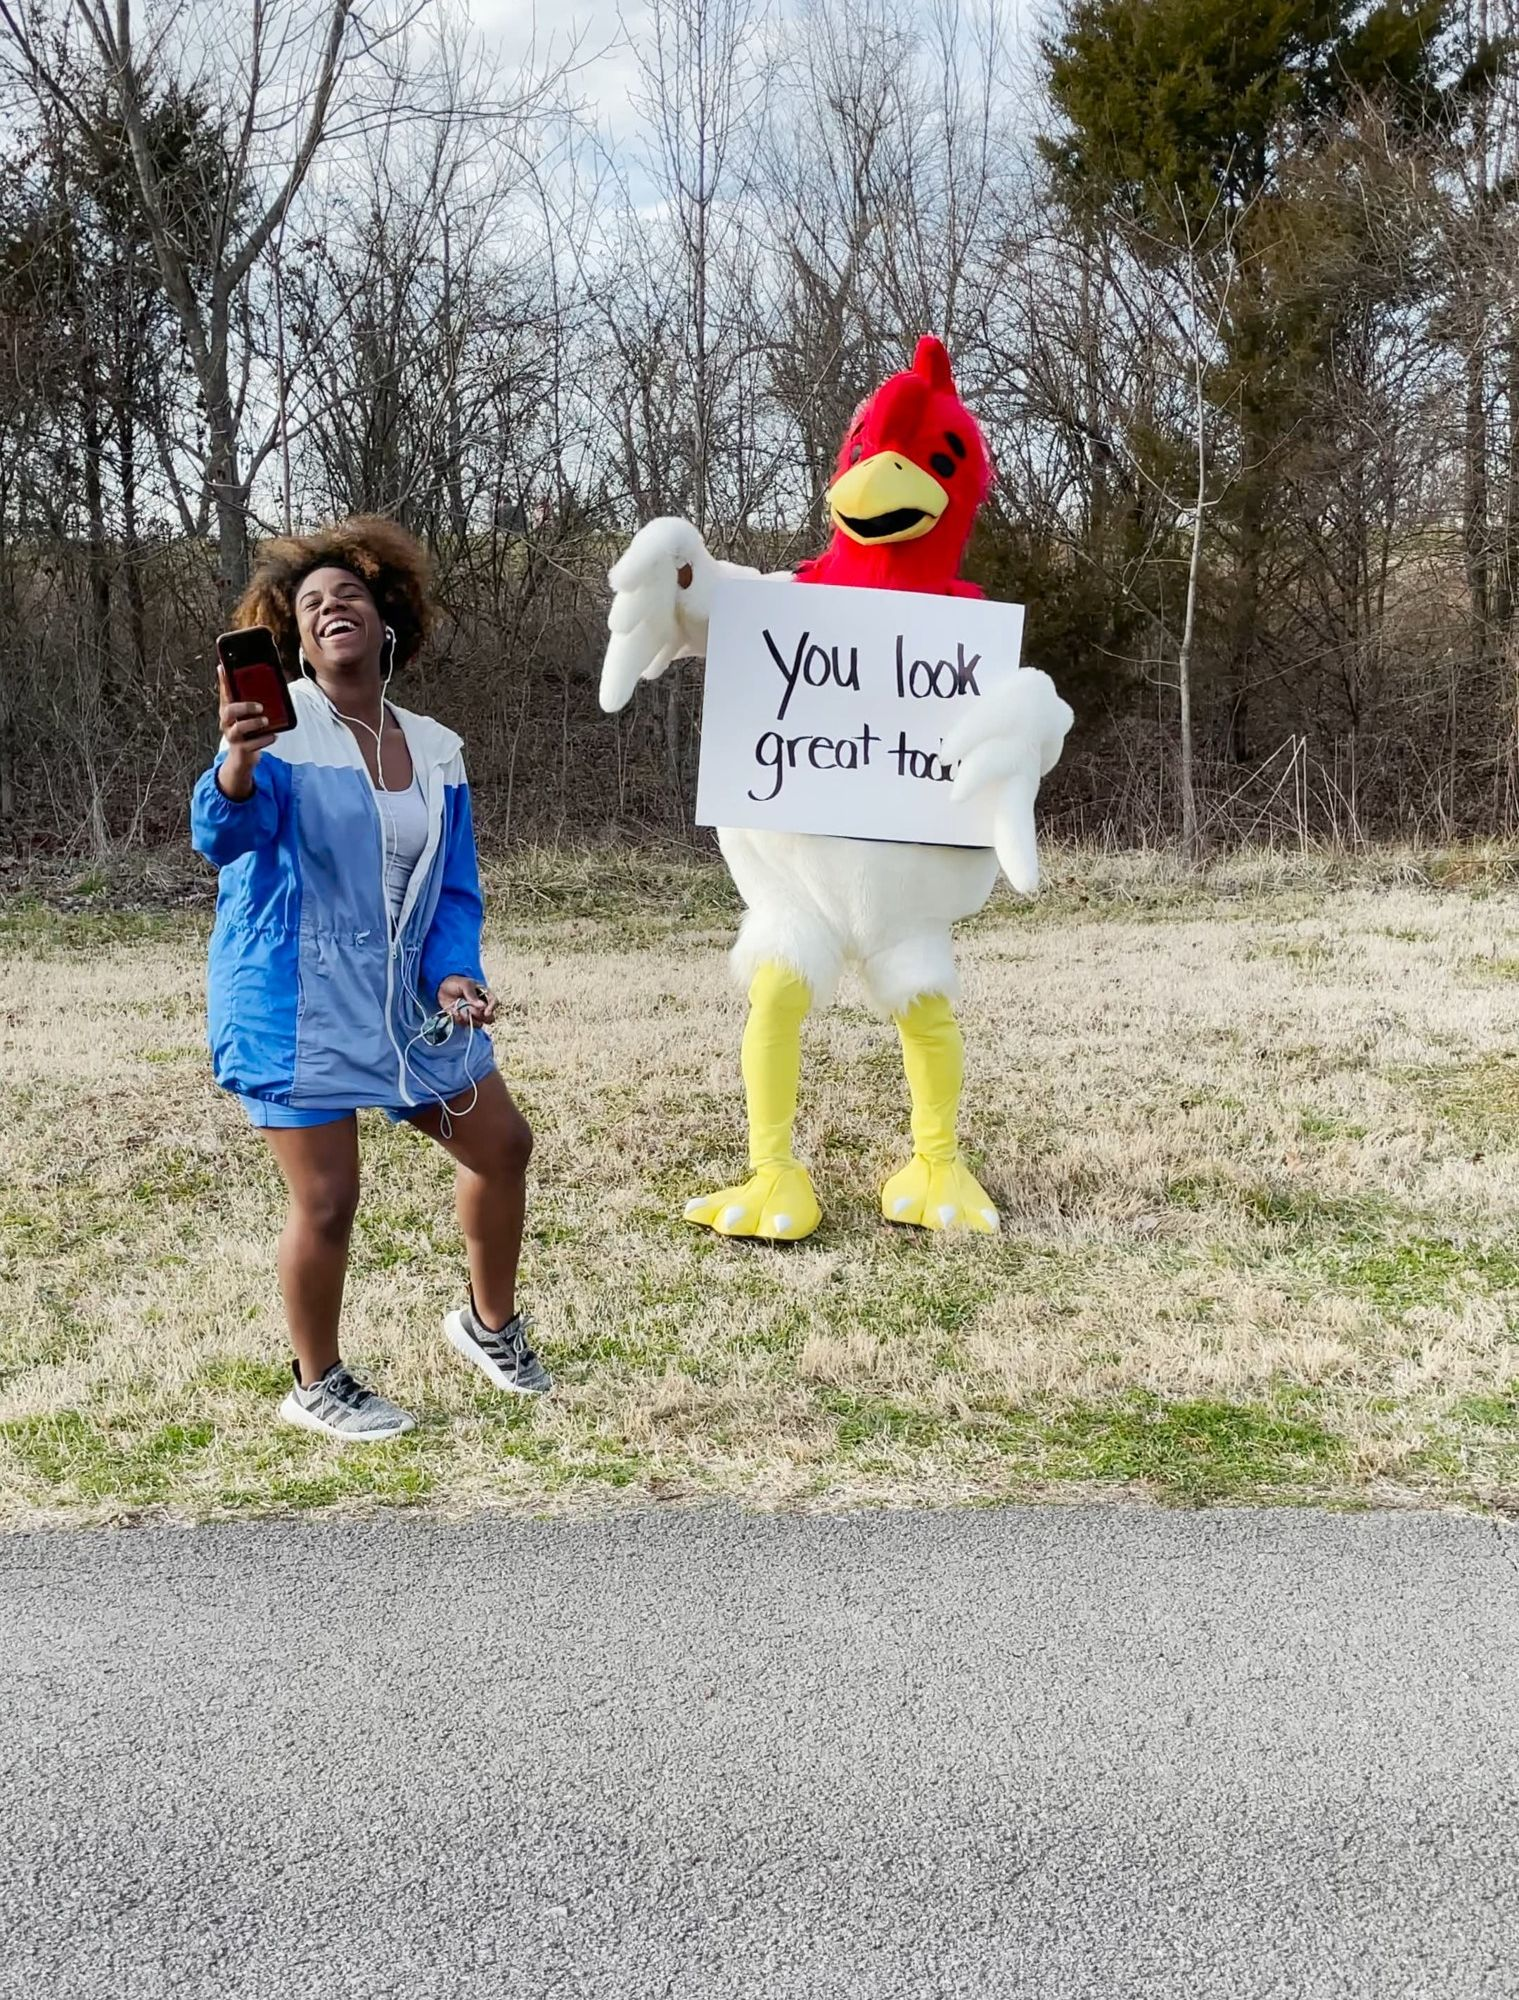 Zaxby's aims to start a movement on Random Acts of Kindness Day